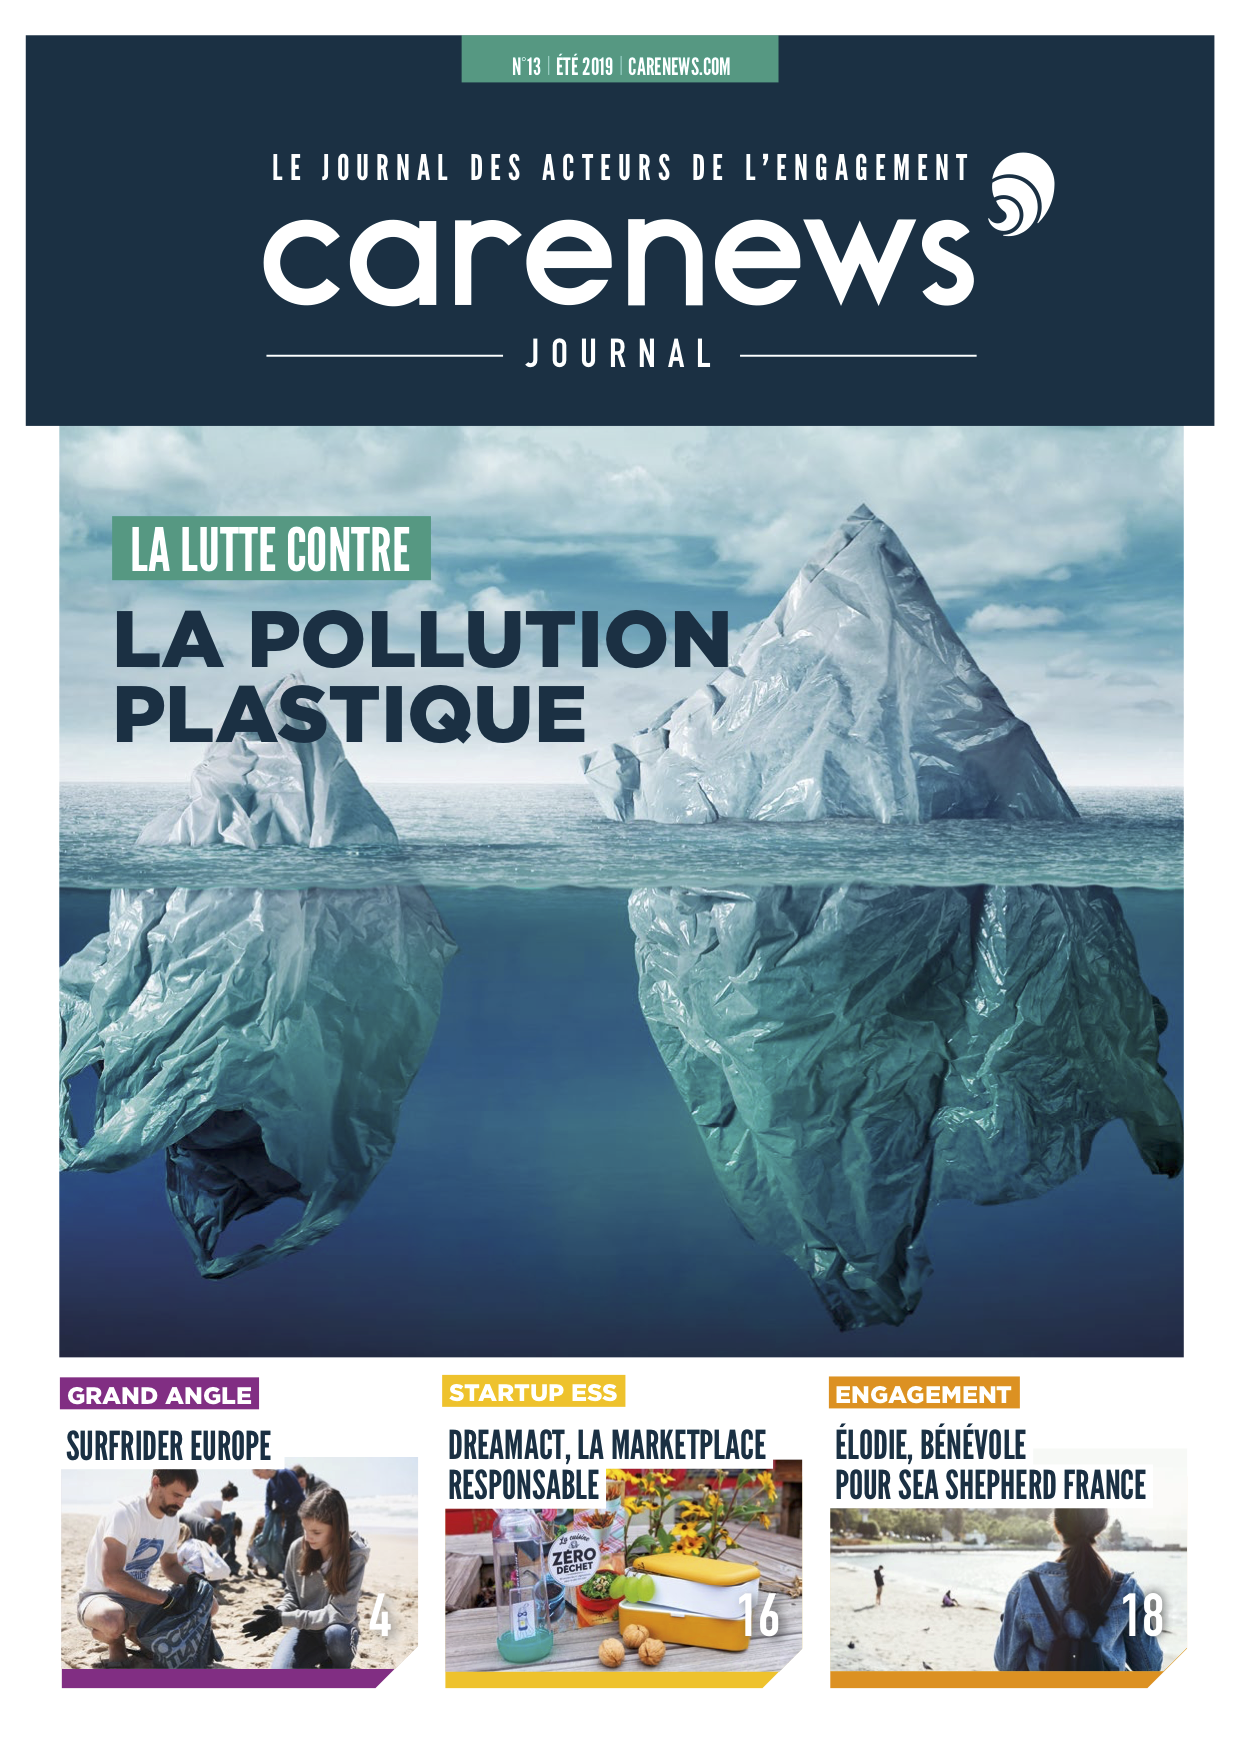 Carenews Journal n°13